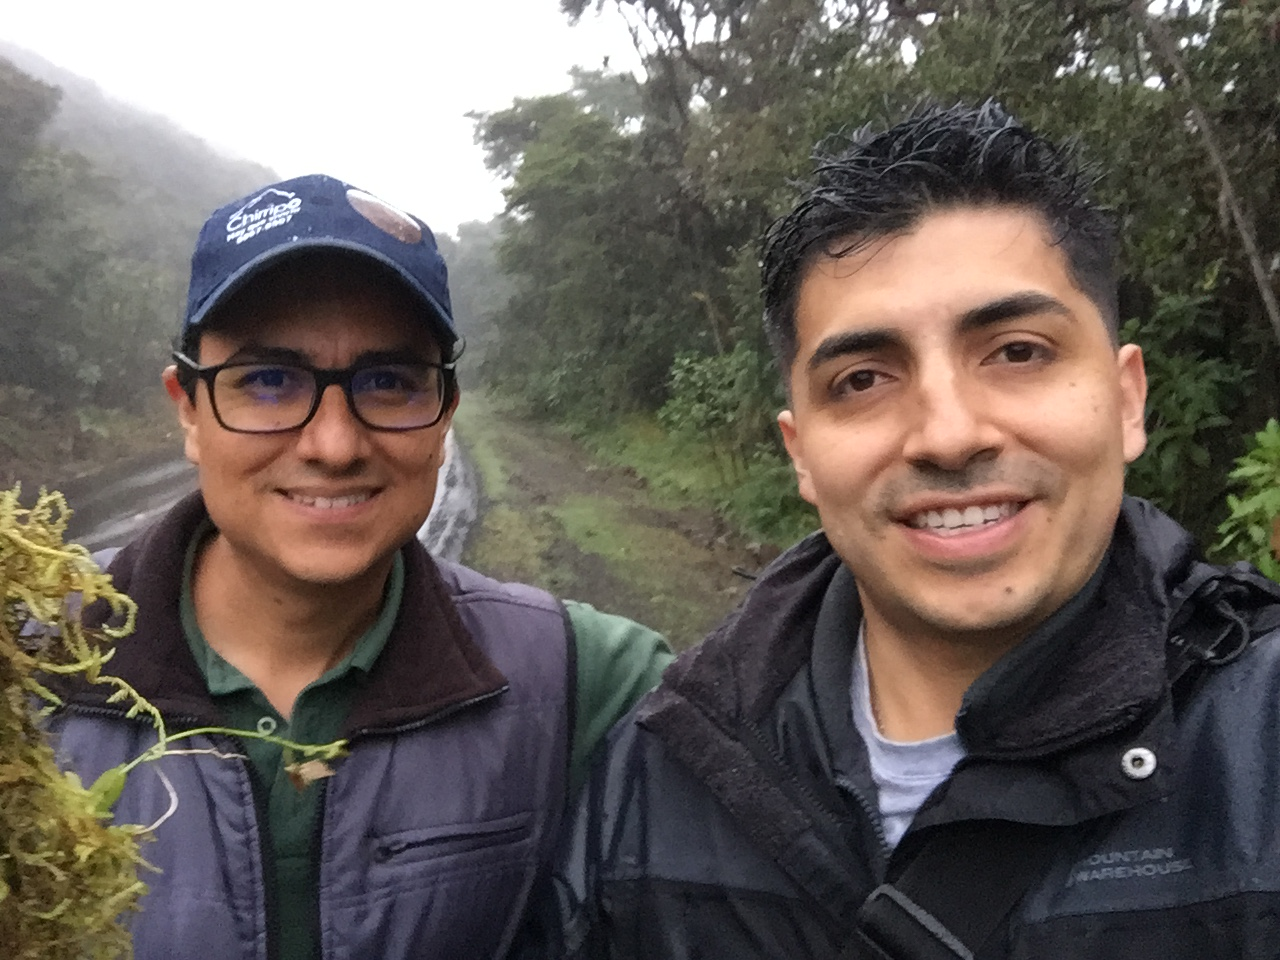 With Diego Bogarín in El Cerro de la Muerte (Costa Rica) collecting orchids! - December 2019